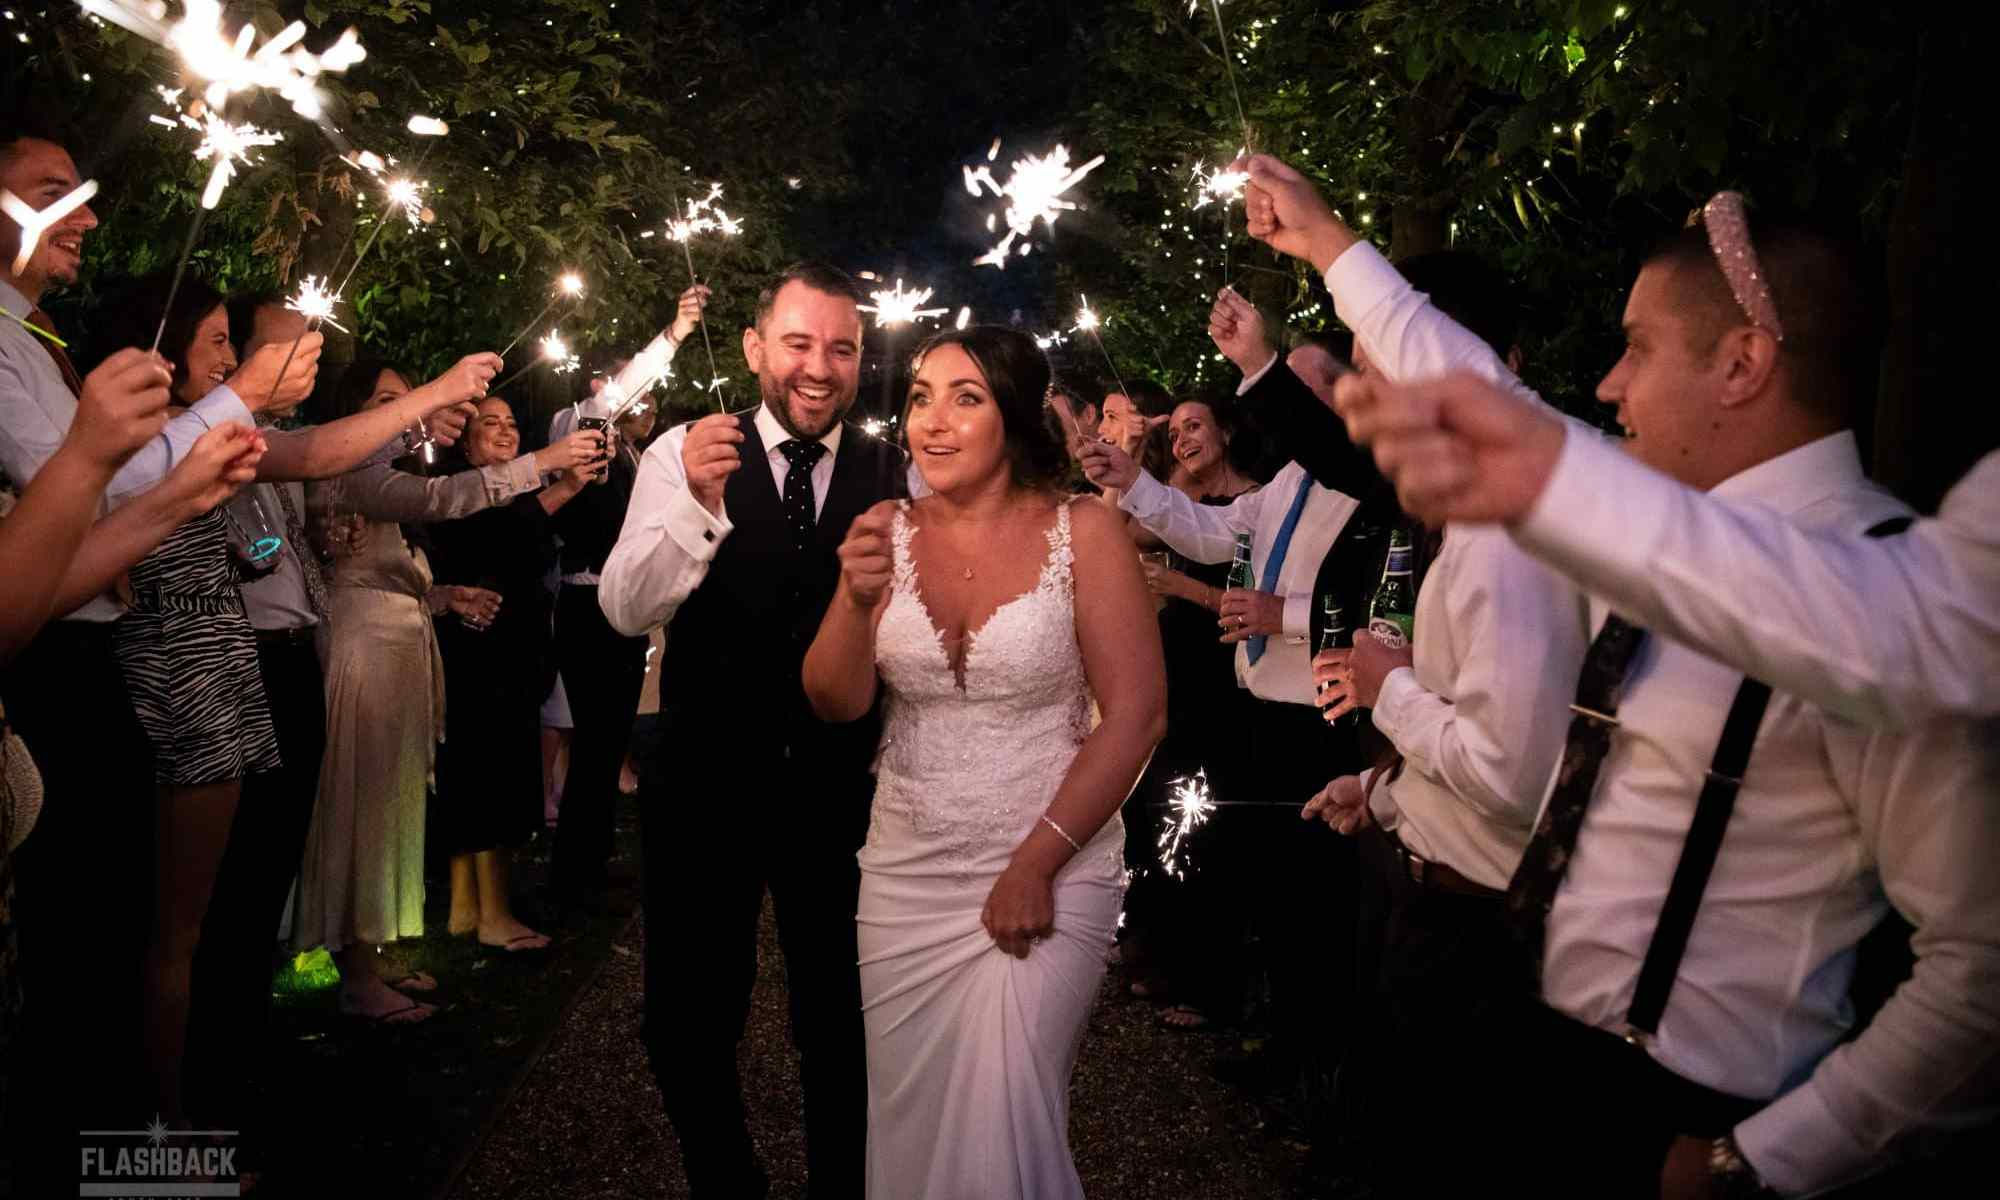 Essex Wedding Photography Bride and Groom walking through archway of sparklers in Essex Page:Wedding planning is a lot of work and expensive!